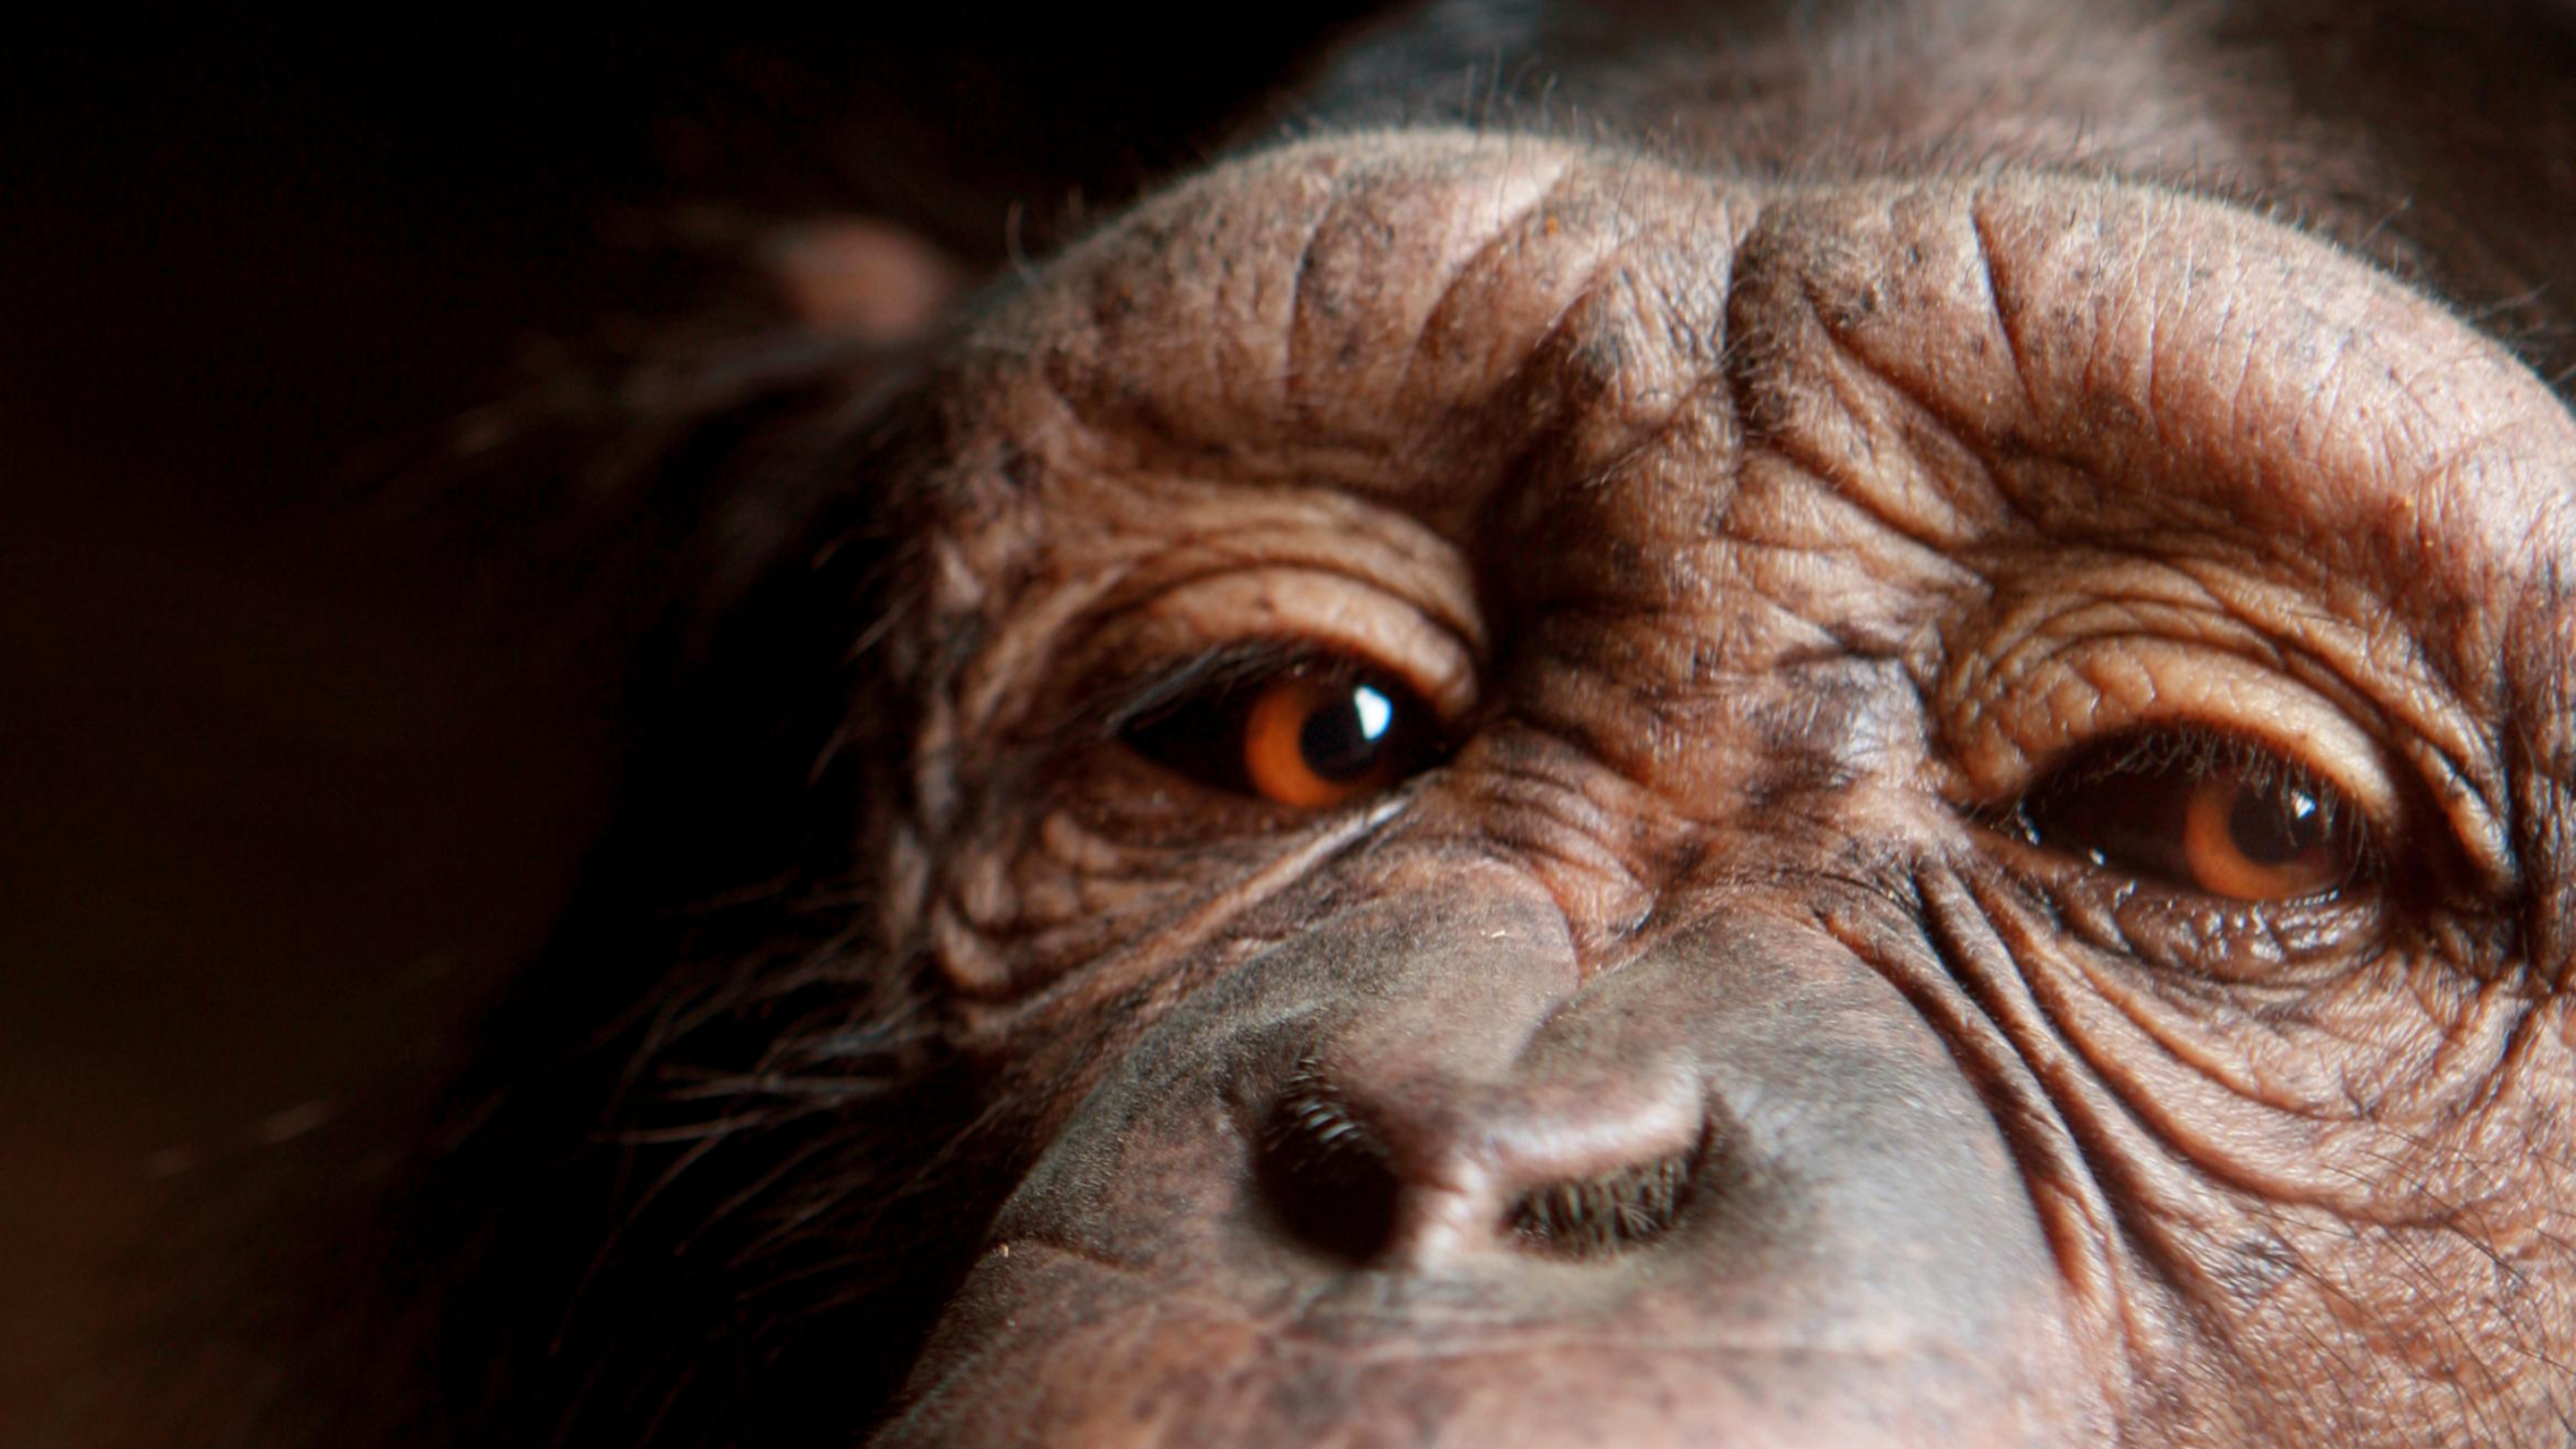 A close-up of a chimpanzee's brown eyes peering at the reader